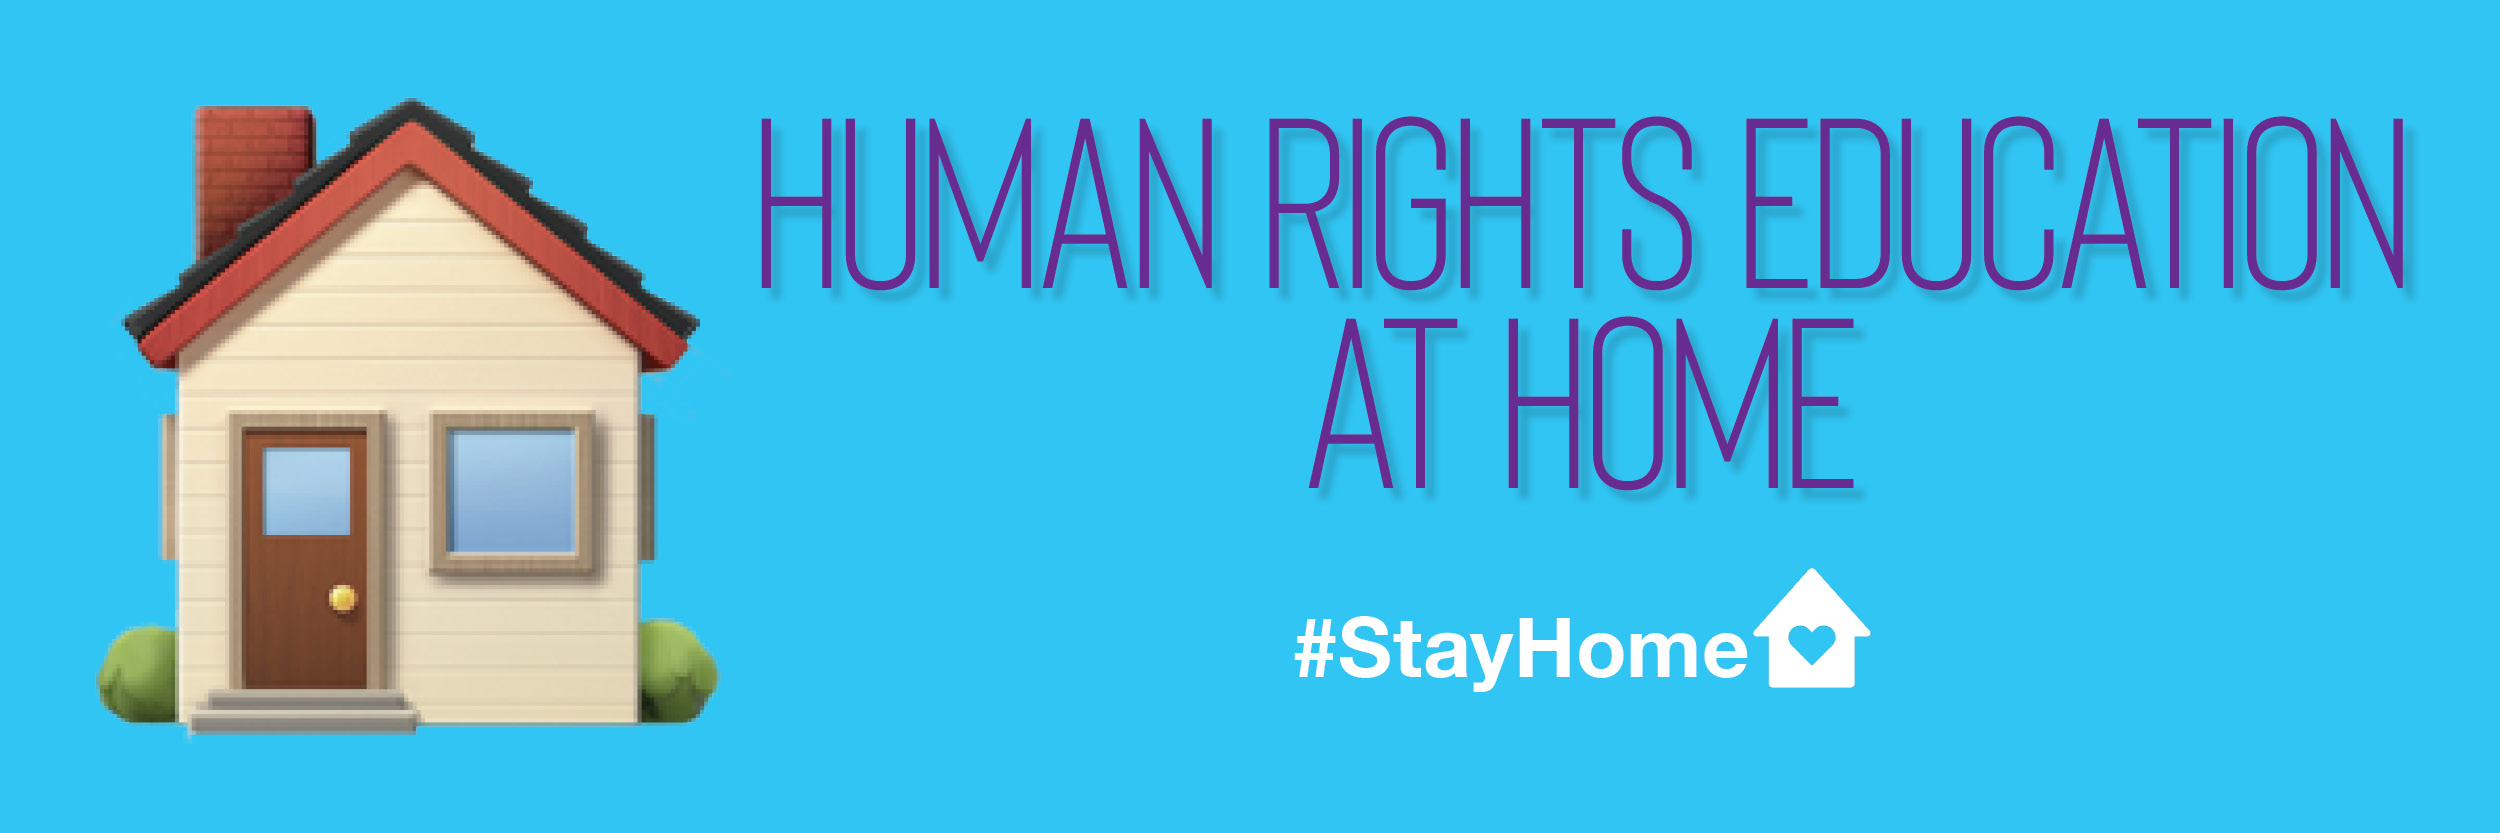 House Emoji with text: Human Rights Education At Home #StayHome